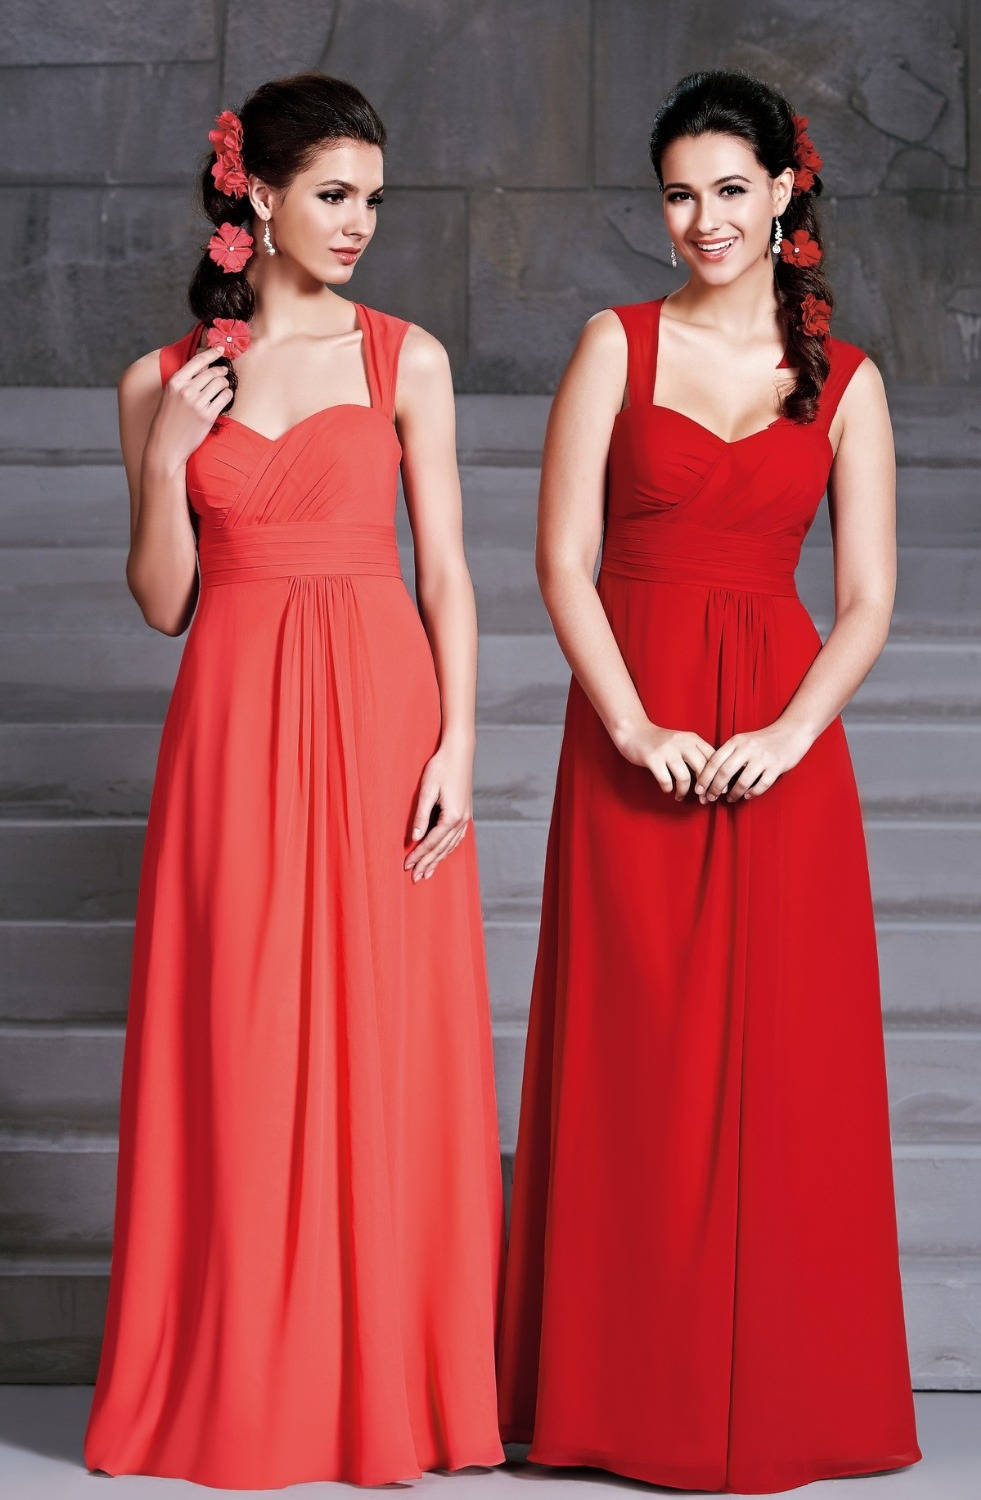 Compare prices on bridesmaid dresses orange long online shopping 2017 cheap modest coral orange red chiffon patterns for bridesmaids dresses open back long maid of ombrellifo Image collections